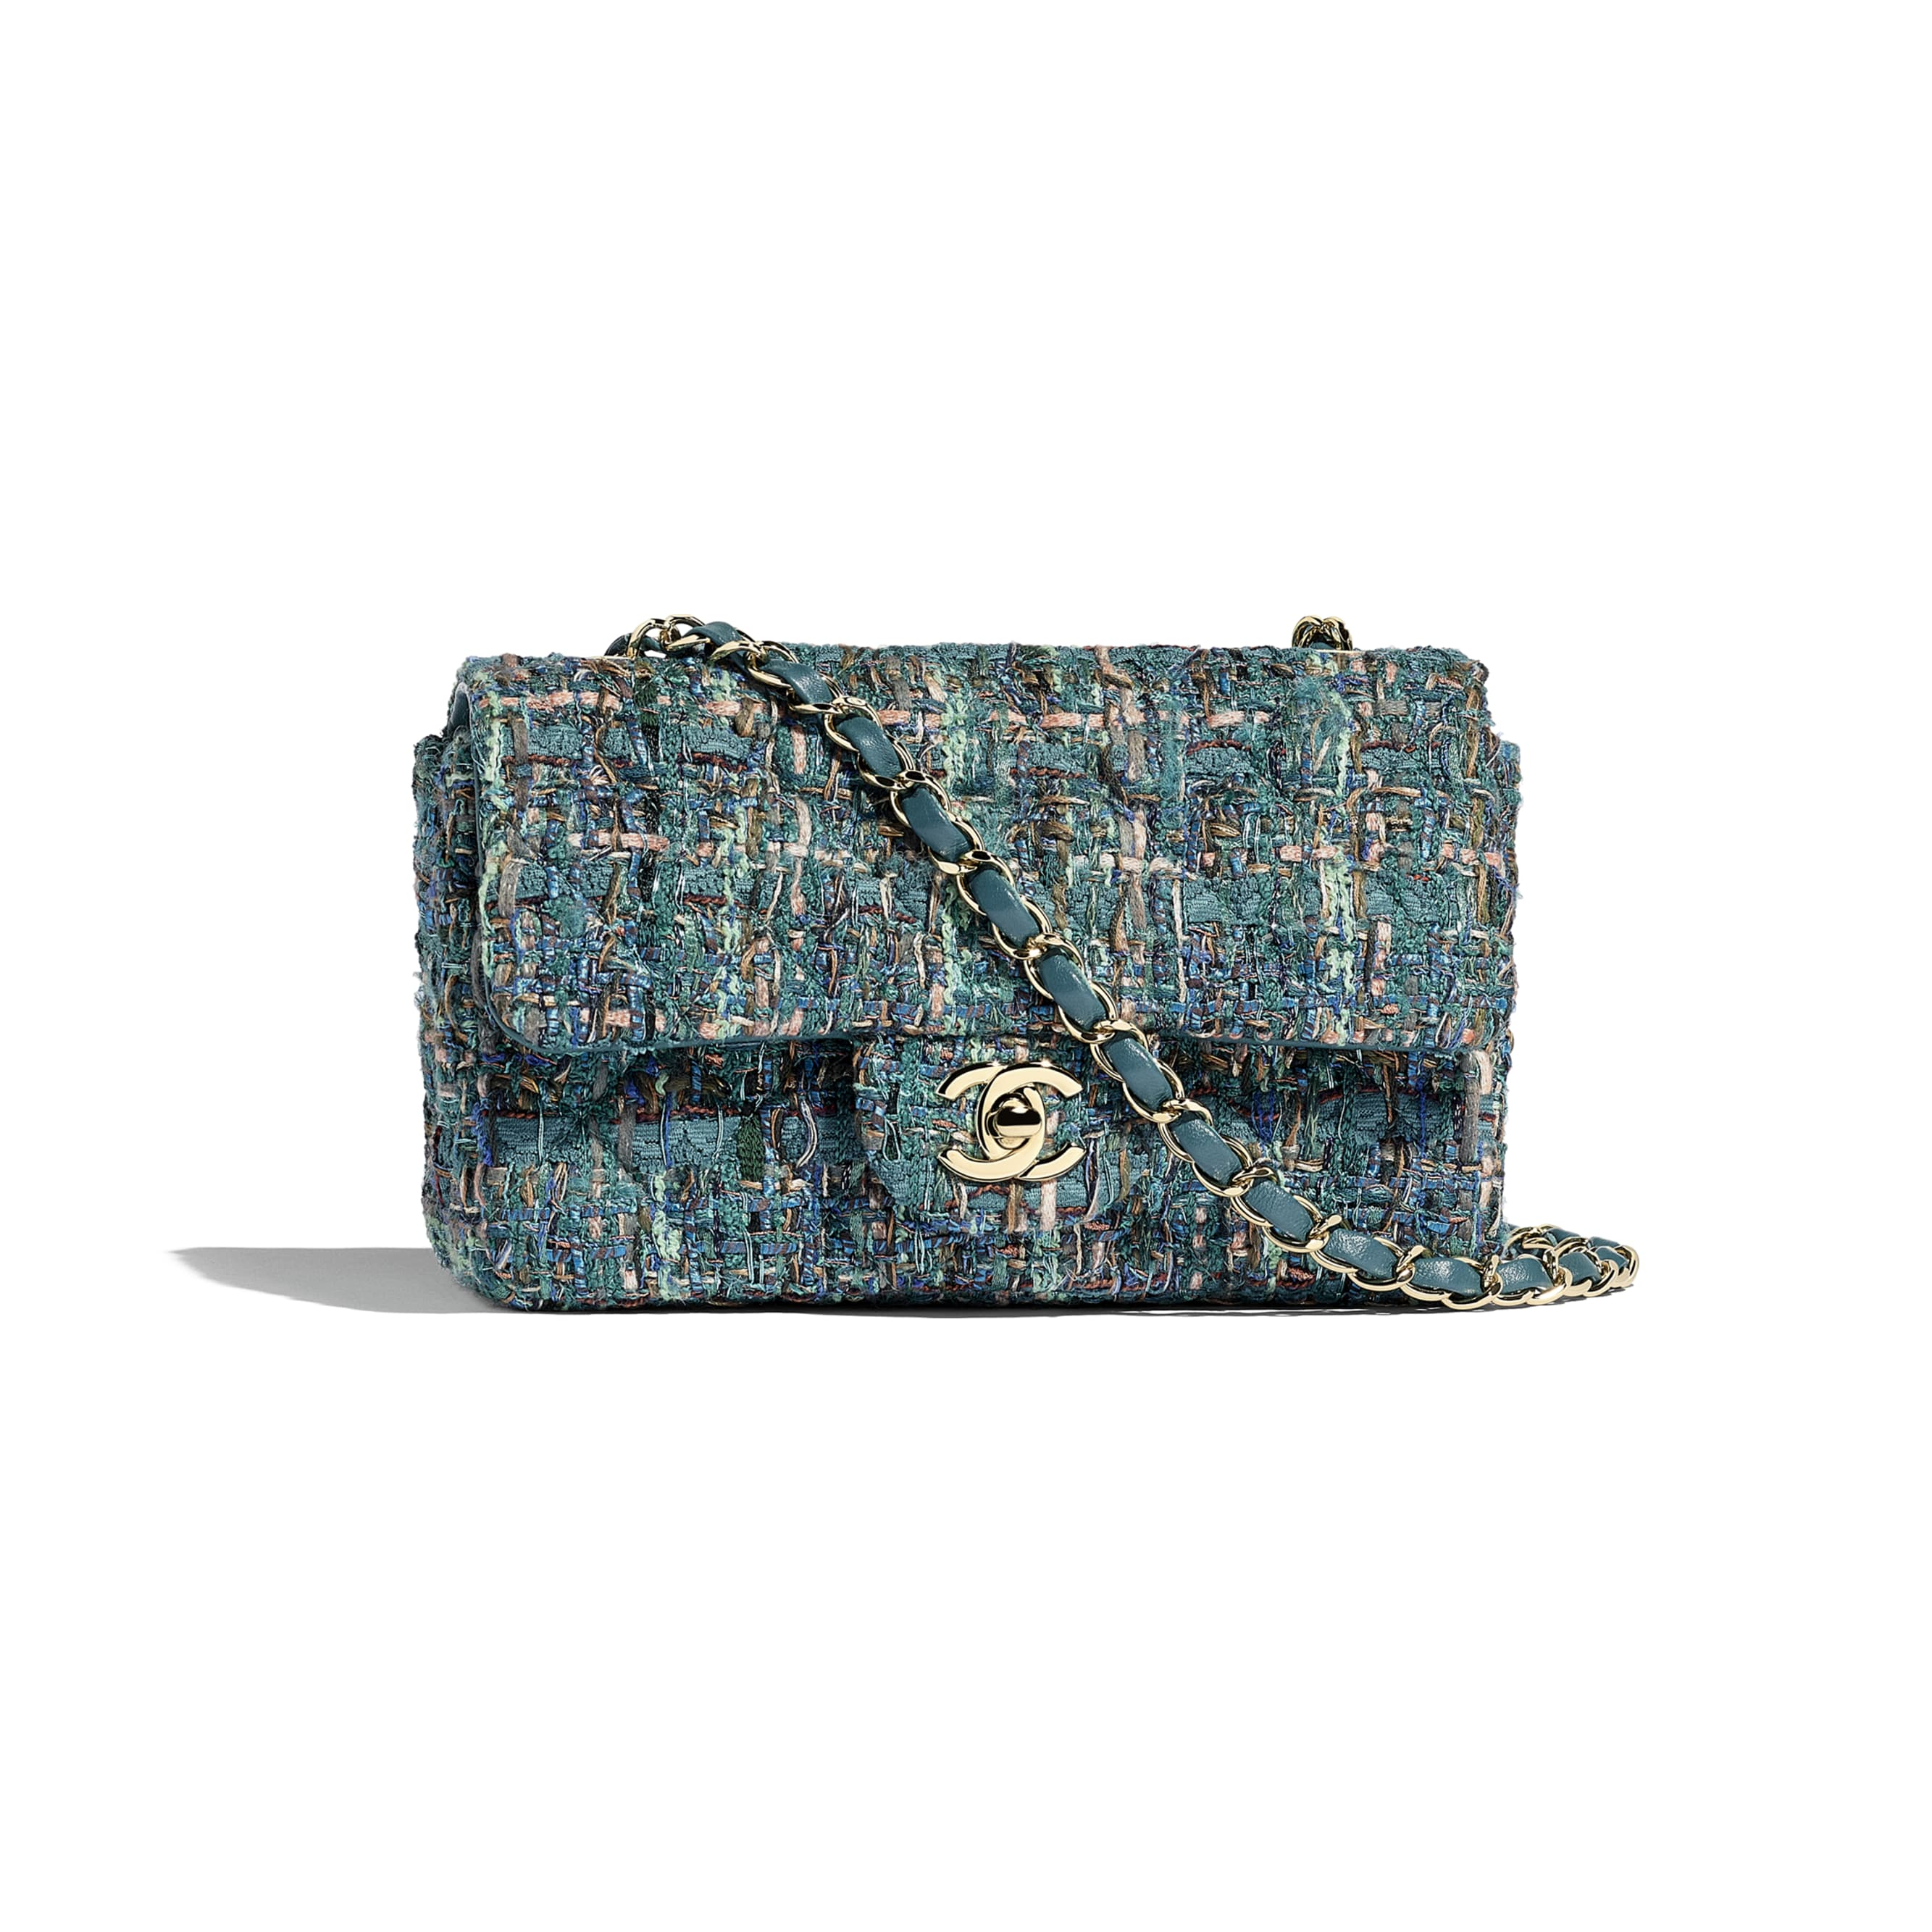 Mini Flap Bag - Turquoise - Tweed & Gold-Tone Metal - Default view - see standard sized version